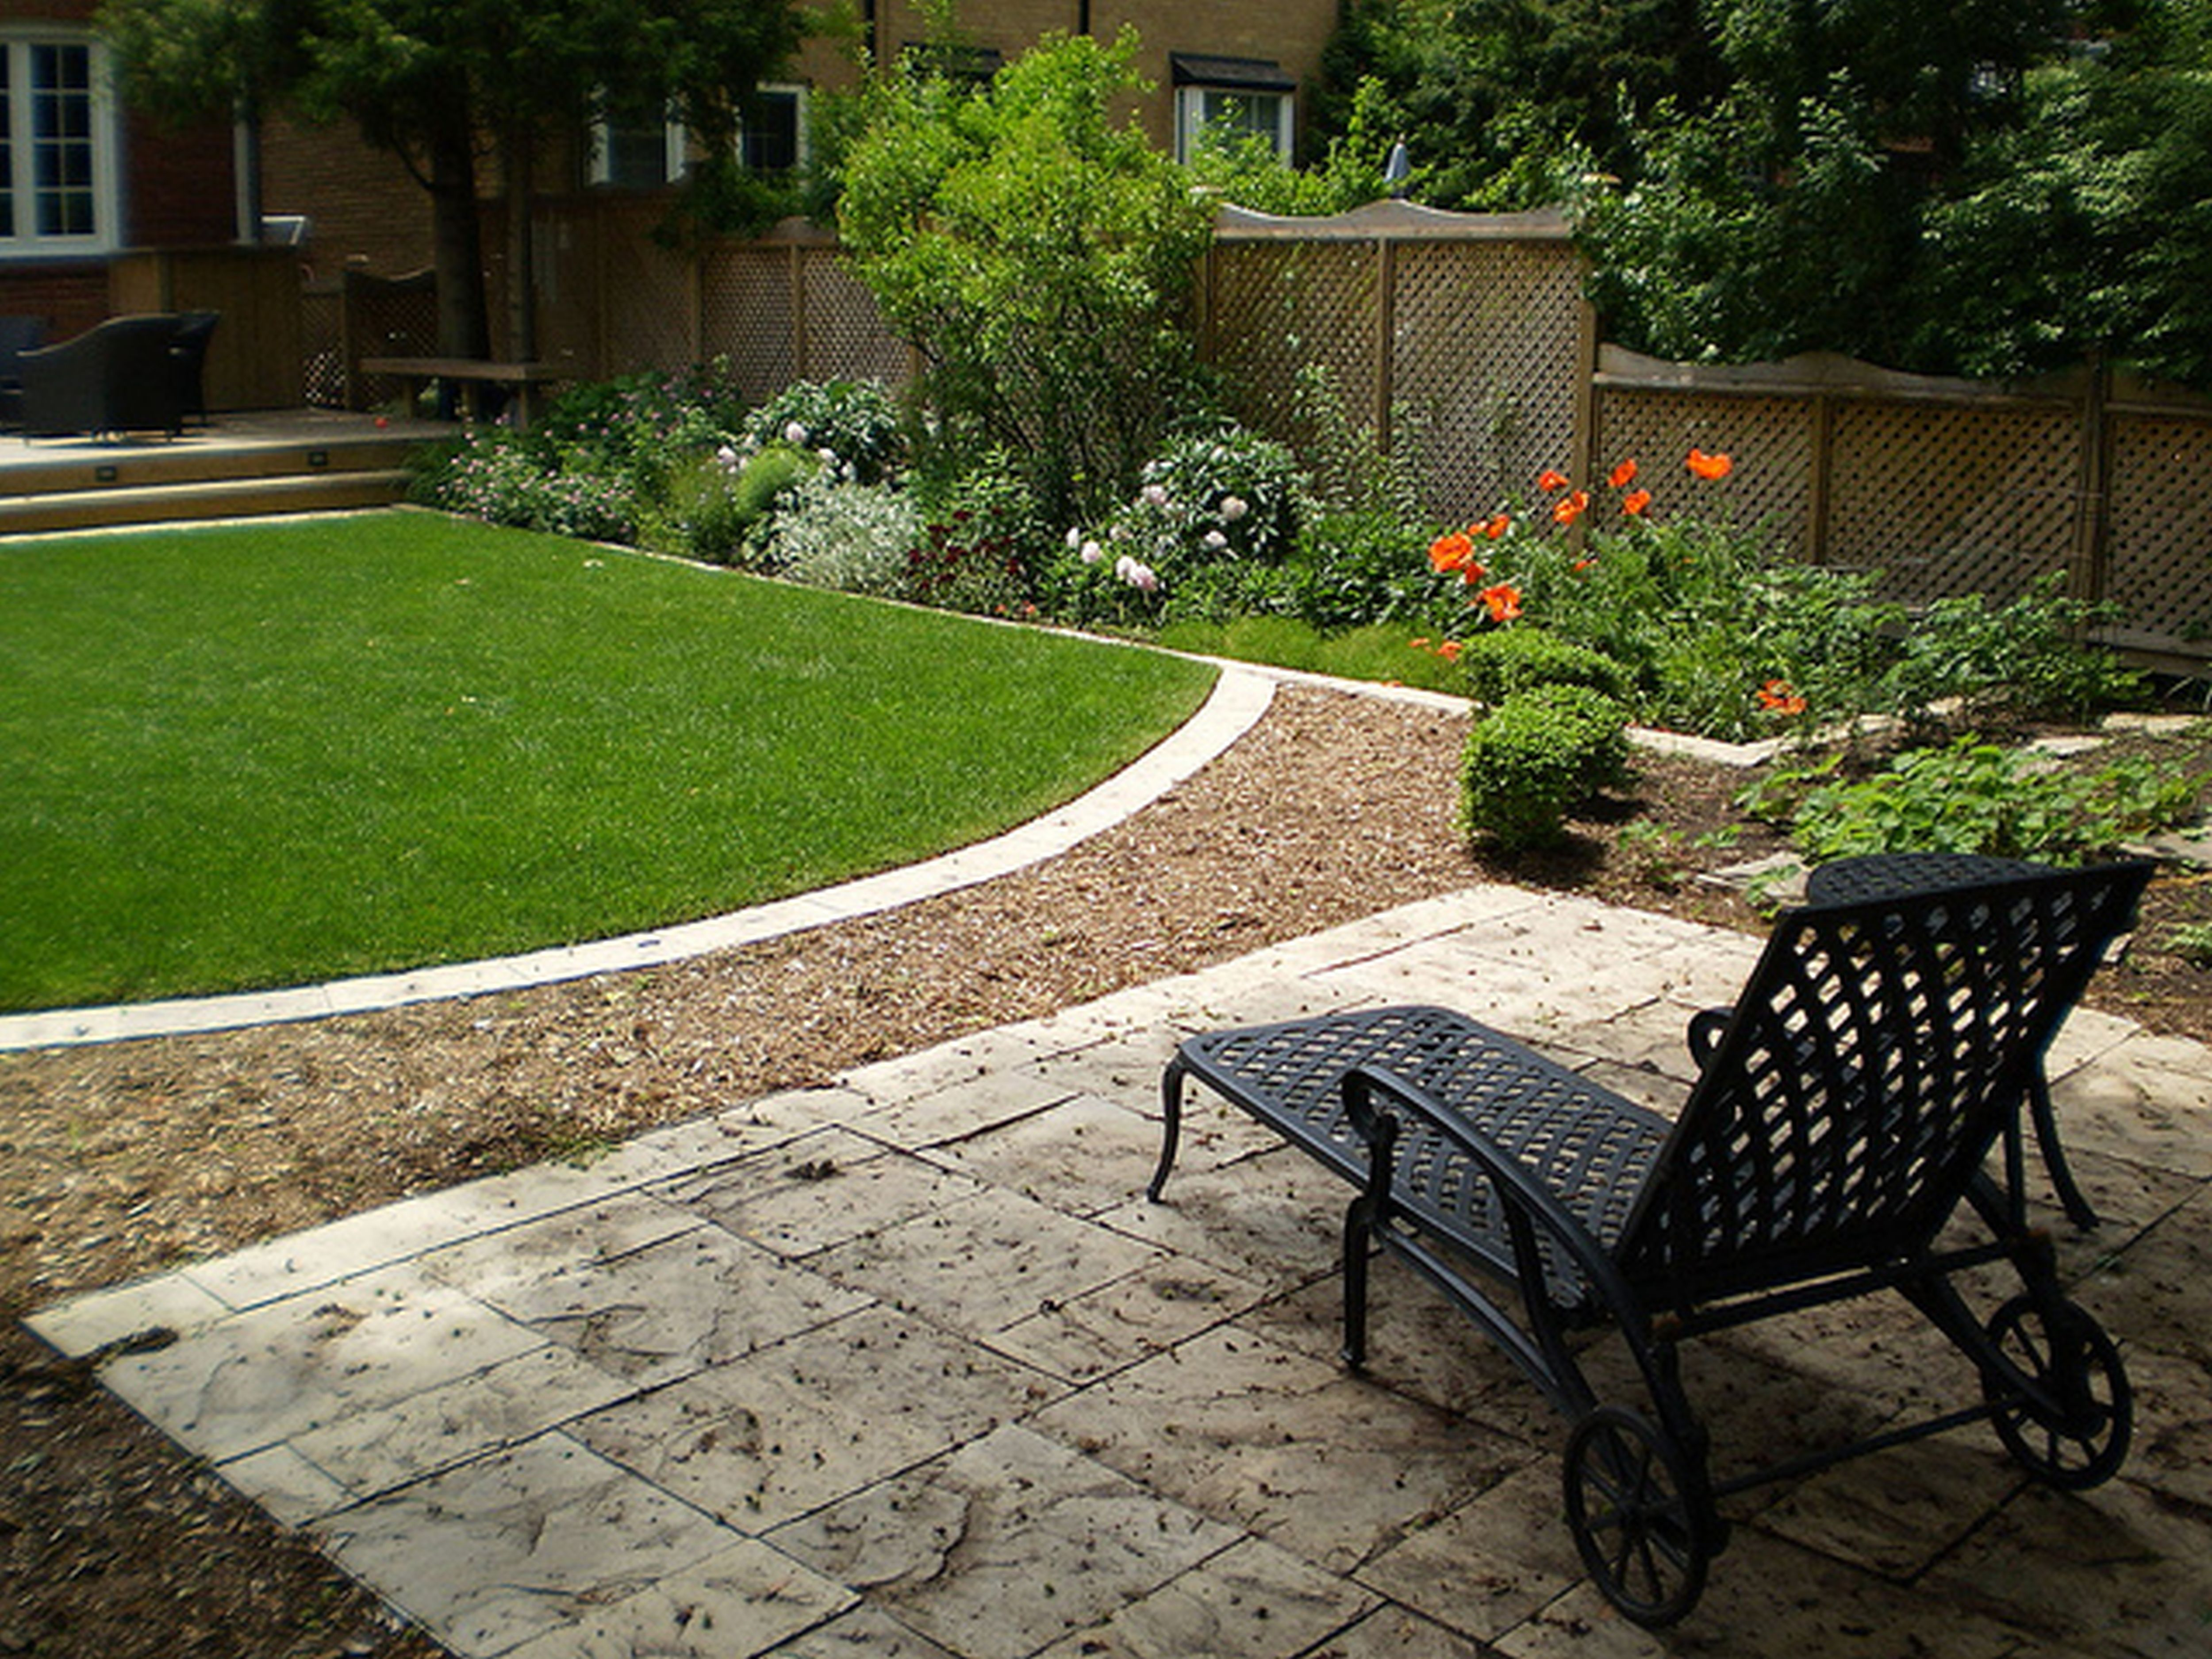 Backyard designs for small yards large and beautiful for Patio landscaping